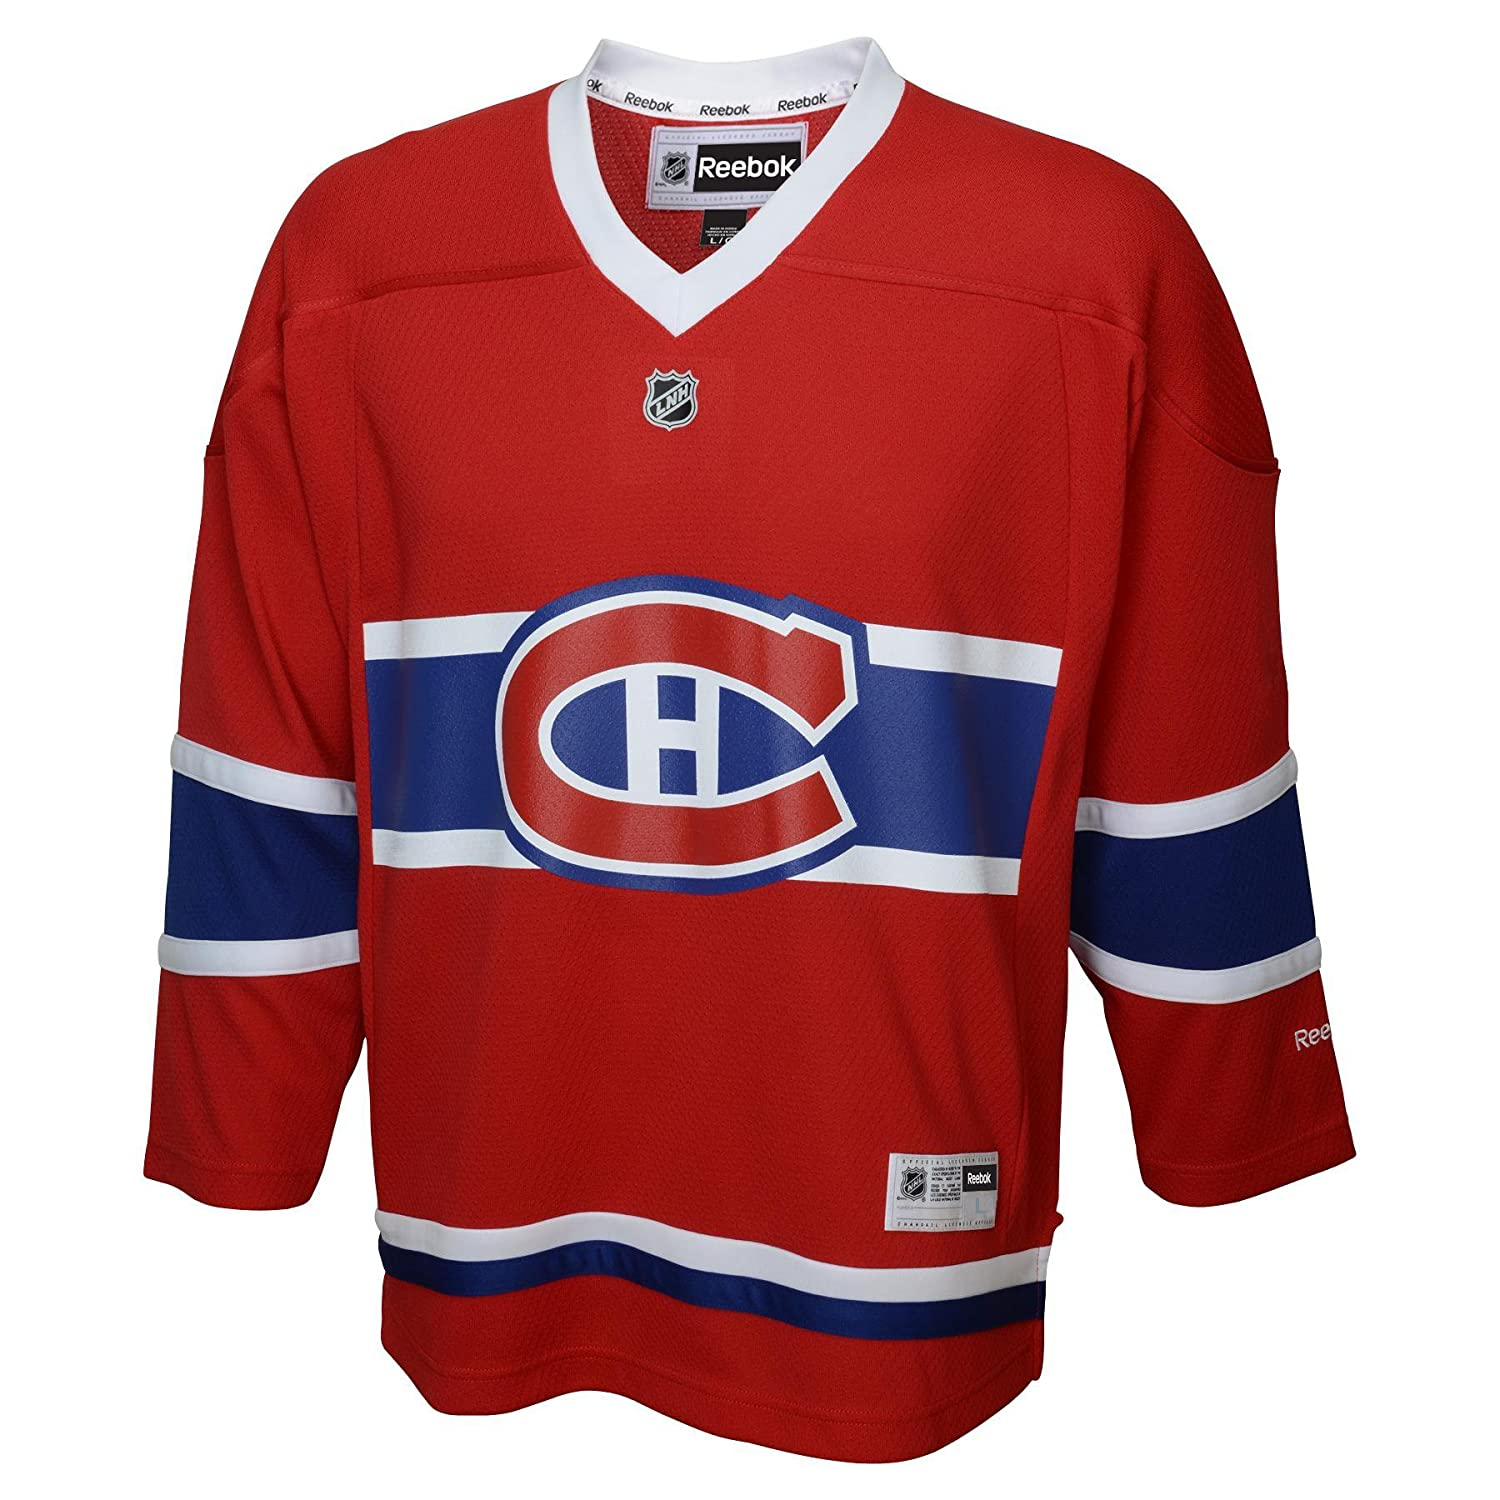 Amazon.com   NHL Montreal Canadiens Boys 4-7 Team Replica Jersey ... fe06aaee2